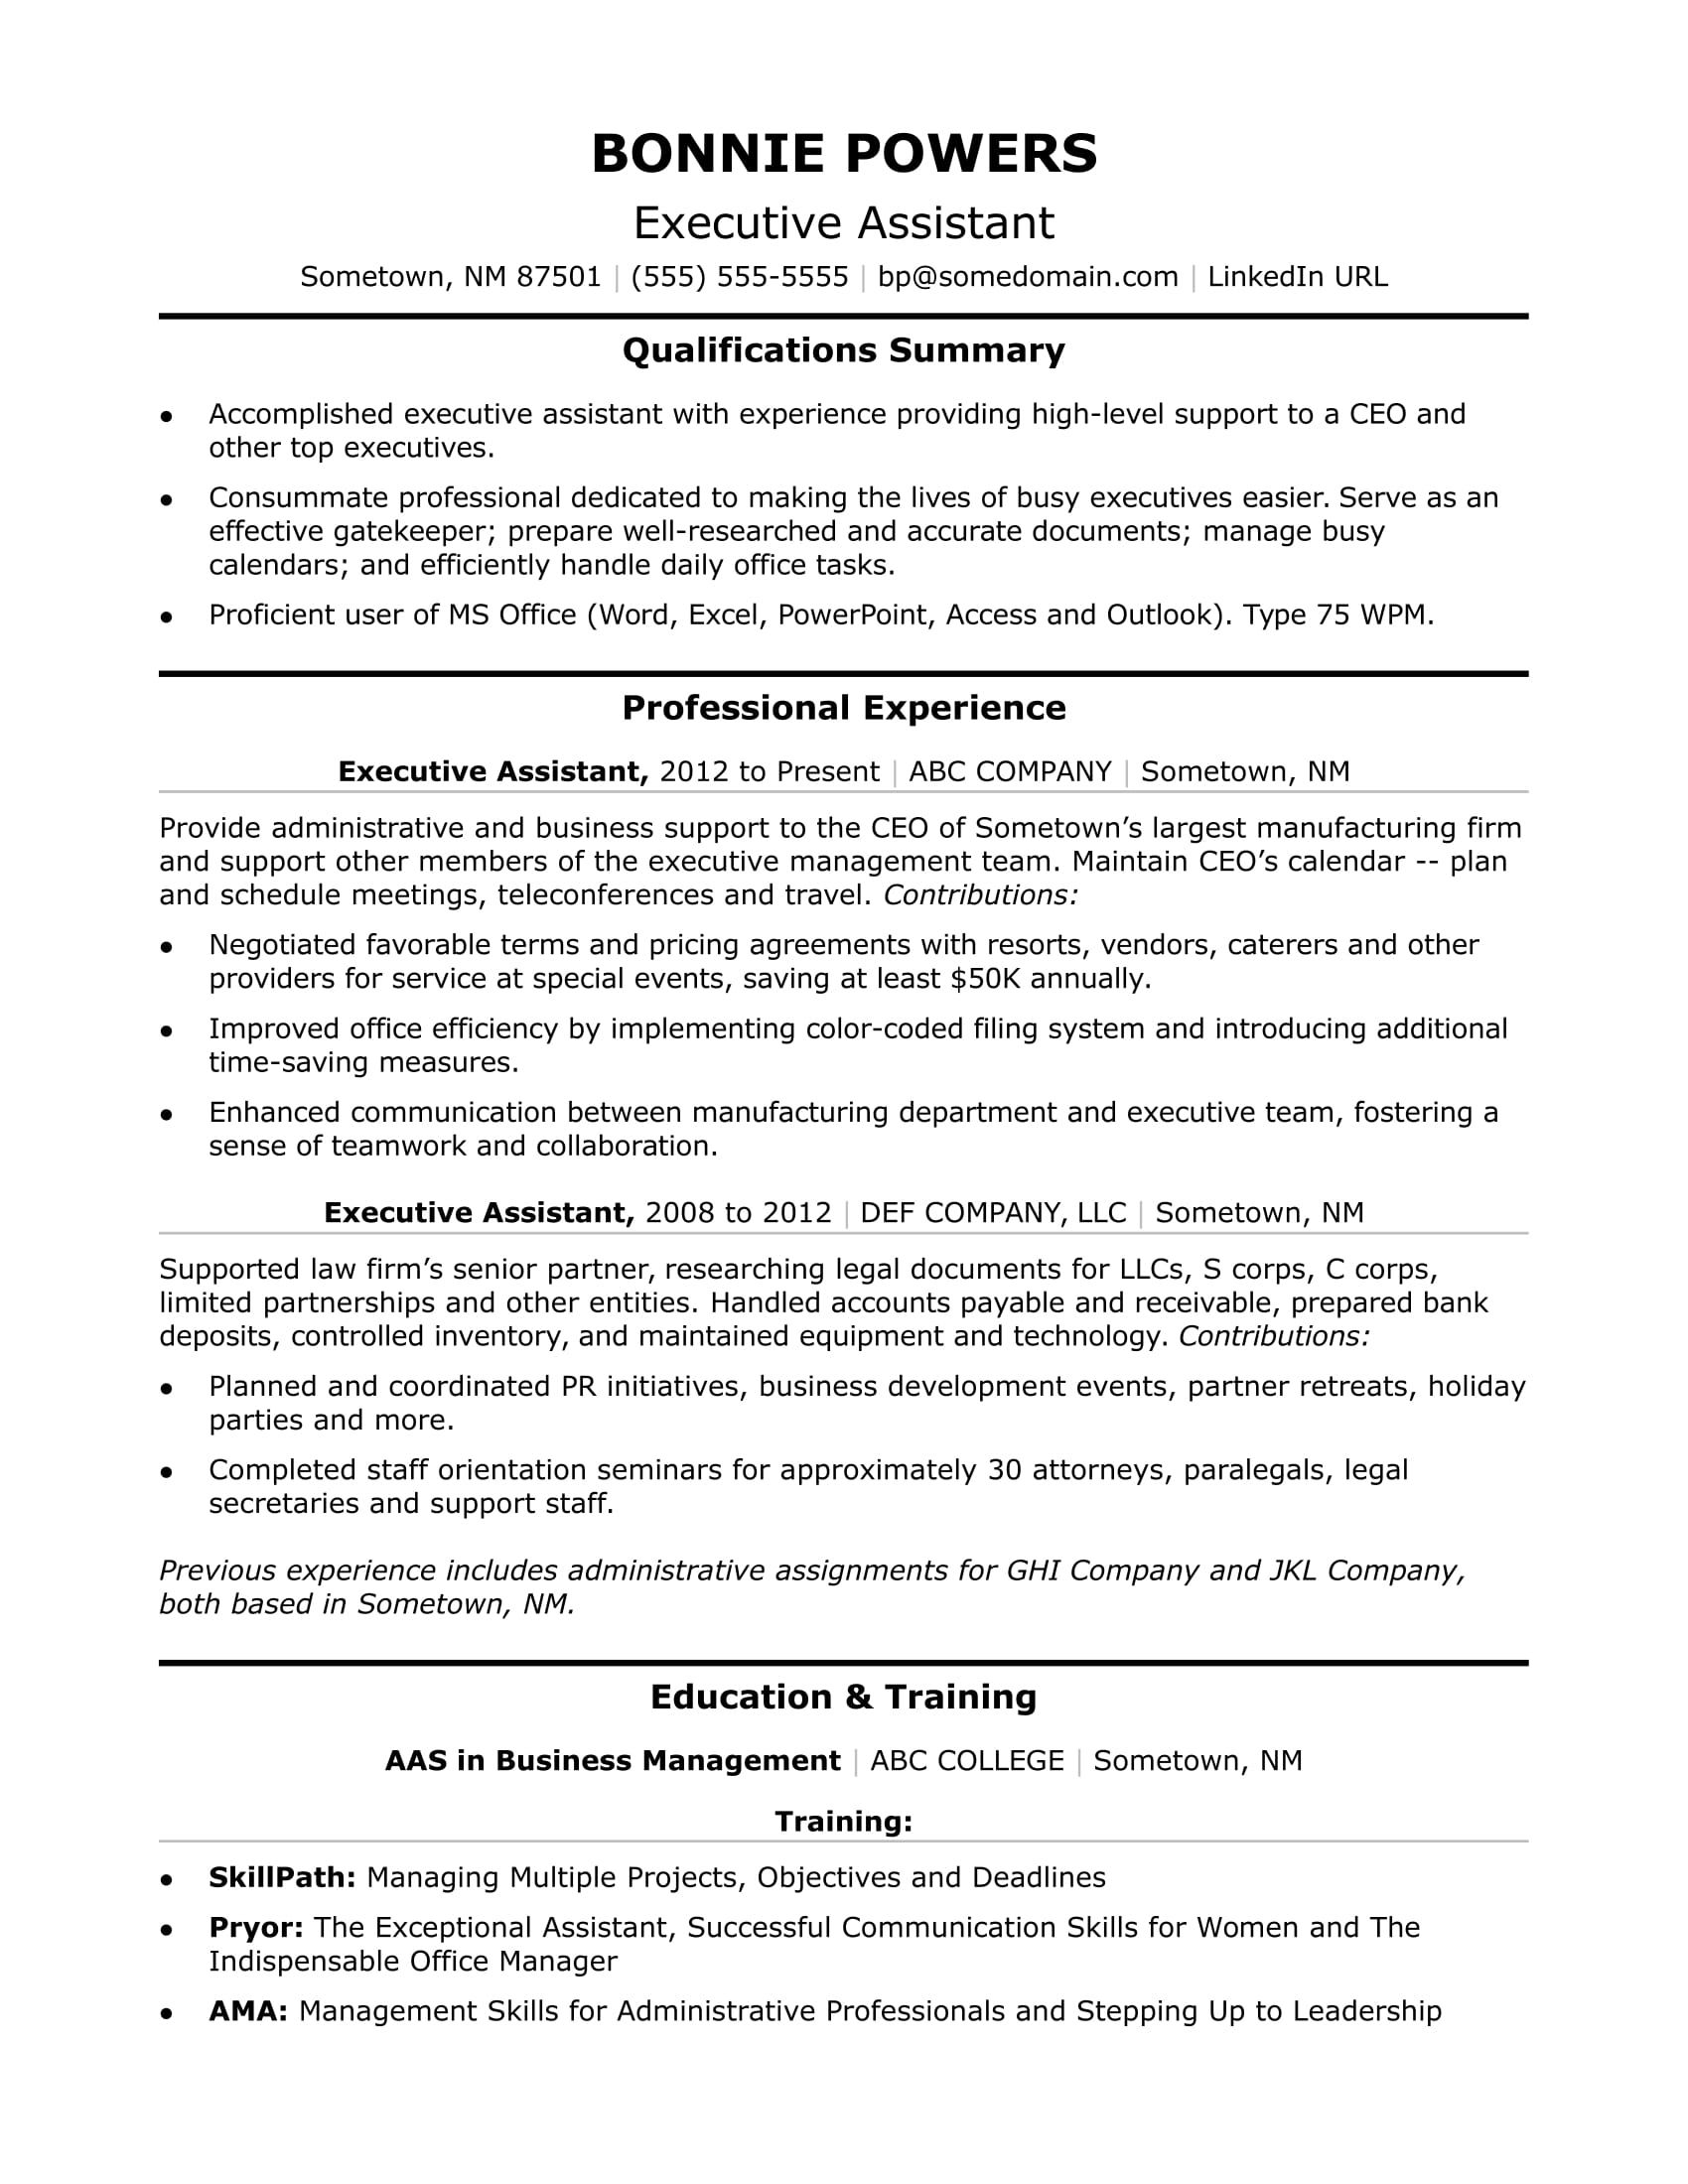 This Executive Assistant Resume Sample Shows How You Can Convey To Employers That You Re Up To The Task Of Providing High Level Administrative Support Administrative Assistant Resume Executive Assistant Executive Assistant Job